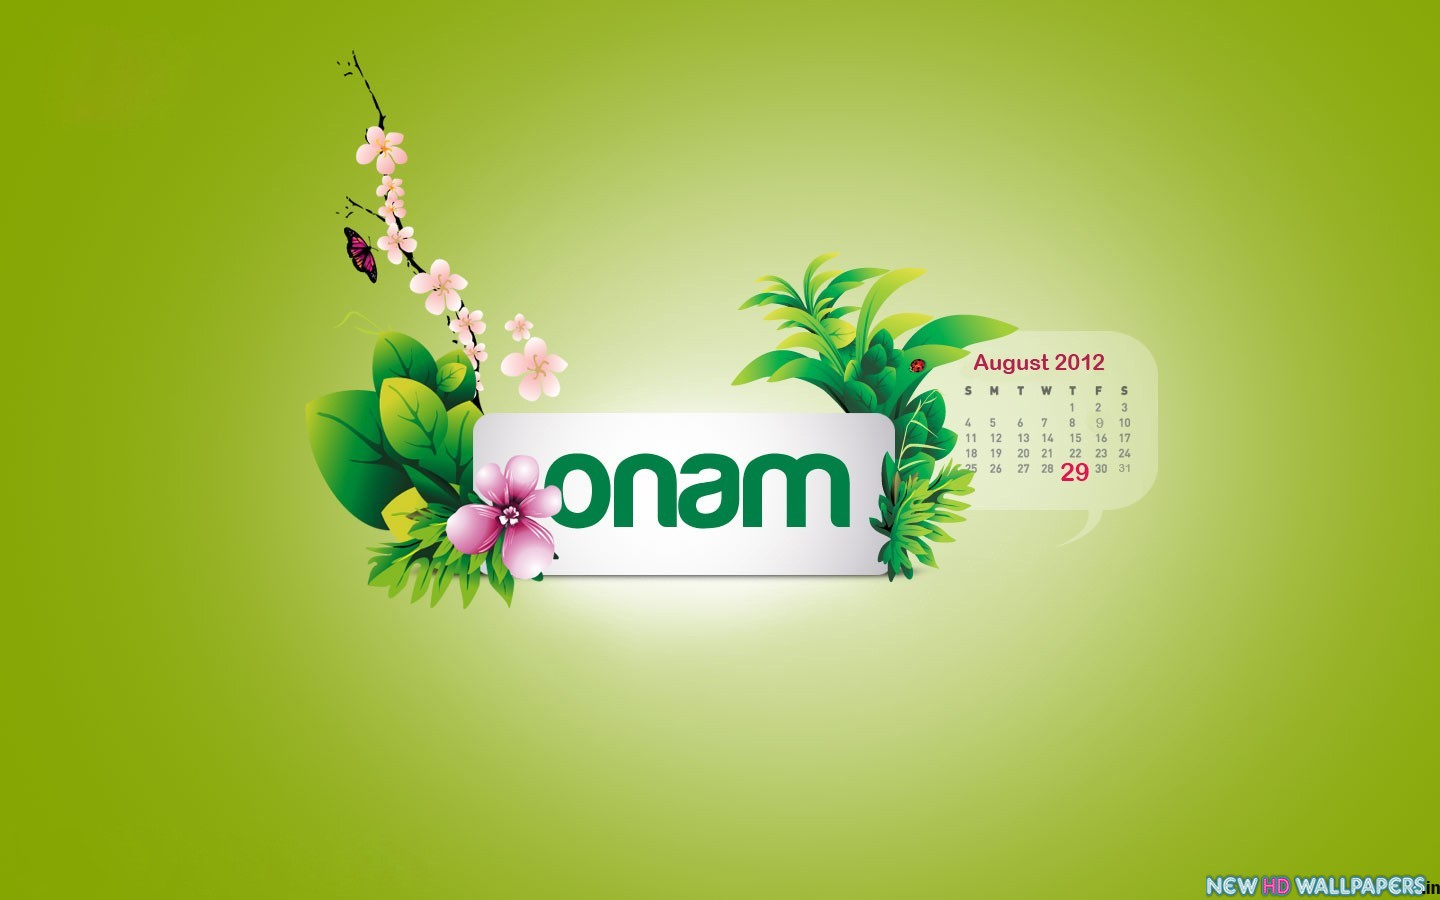 Onam-2015-Wishes-Greeting-free wallpapers